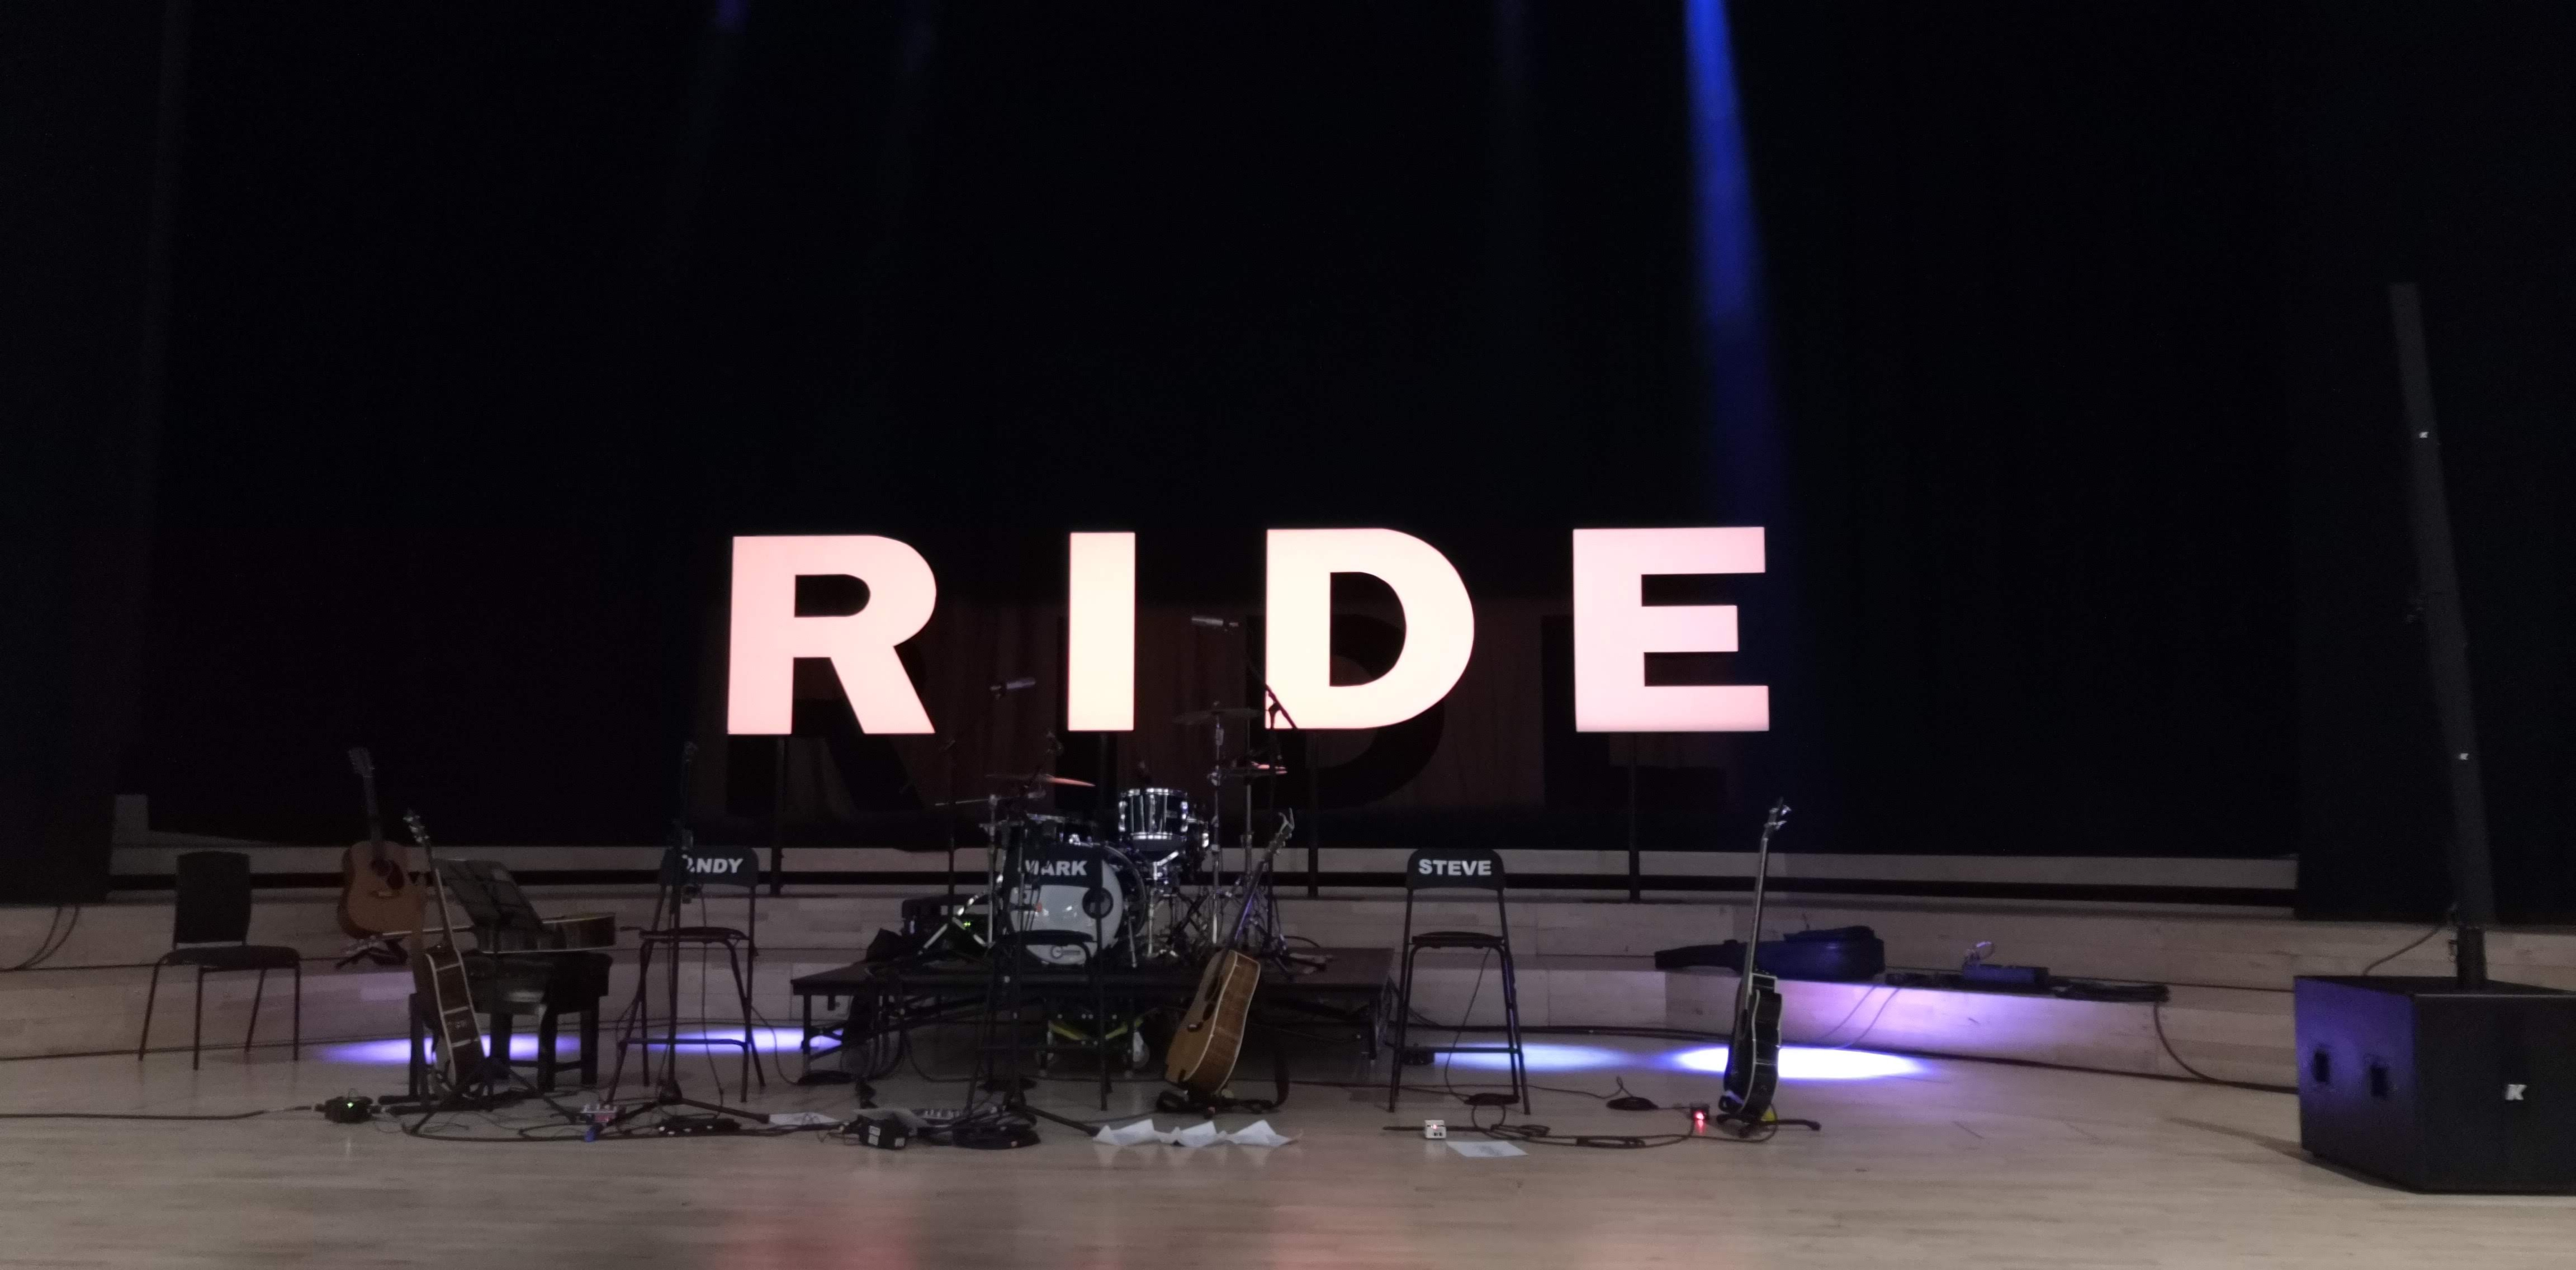 Instruments on stage with illuminated Ride logo. Ride @ Royal Northern College of Music